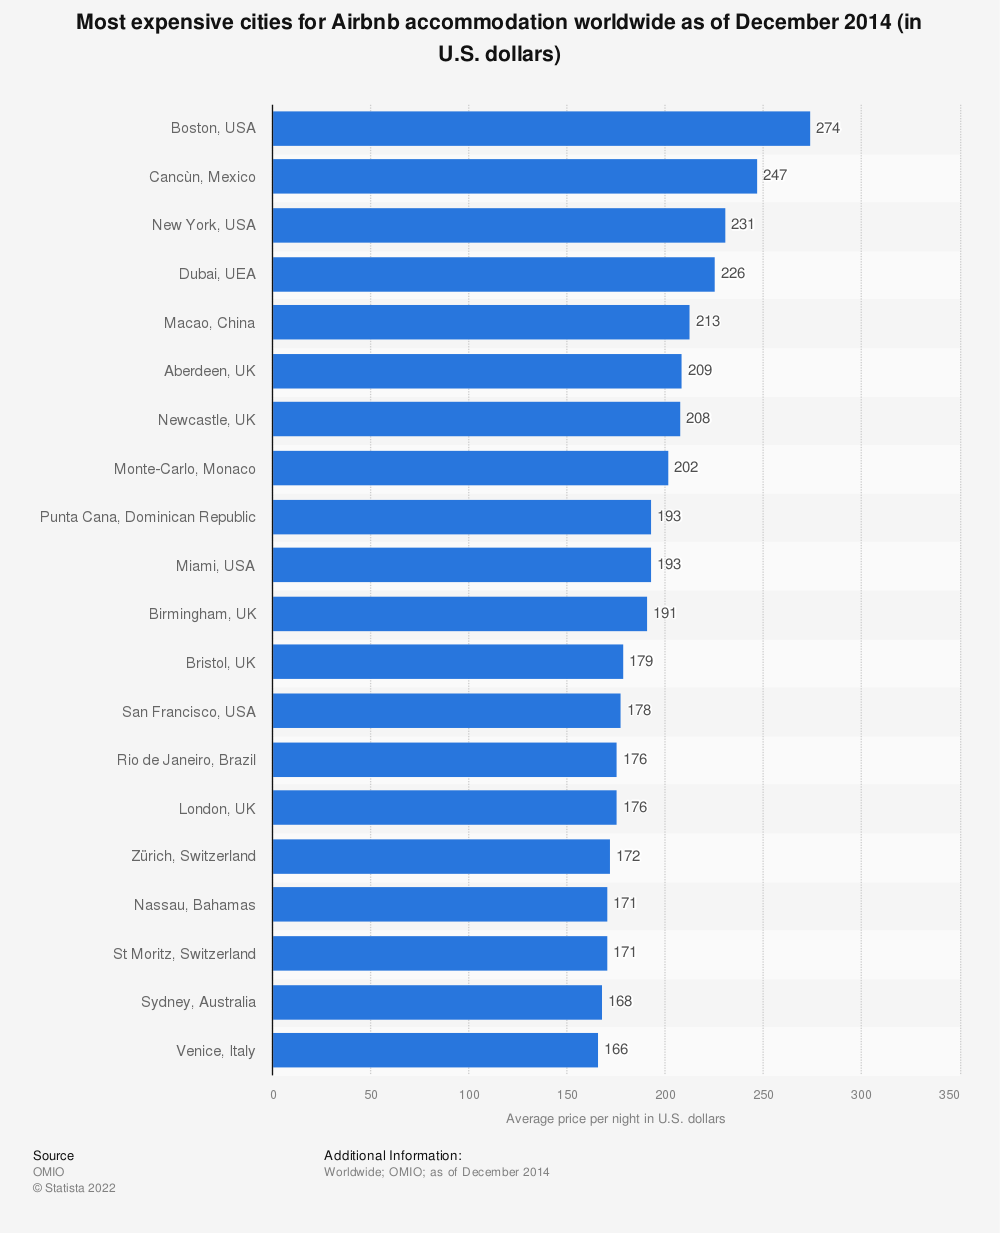 Statistic: Most expensive cities for Airbnb accommodation worldwide as of December 2014 (in U.S. dollars) | Statista